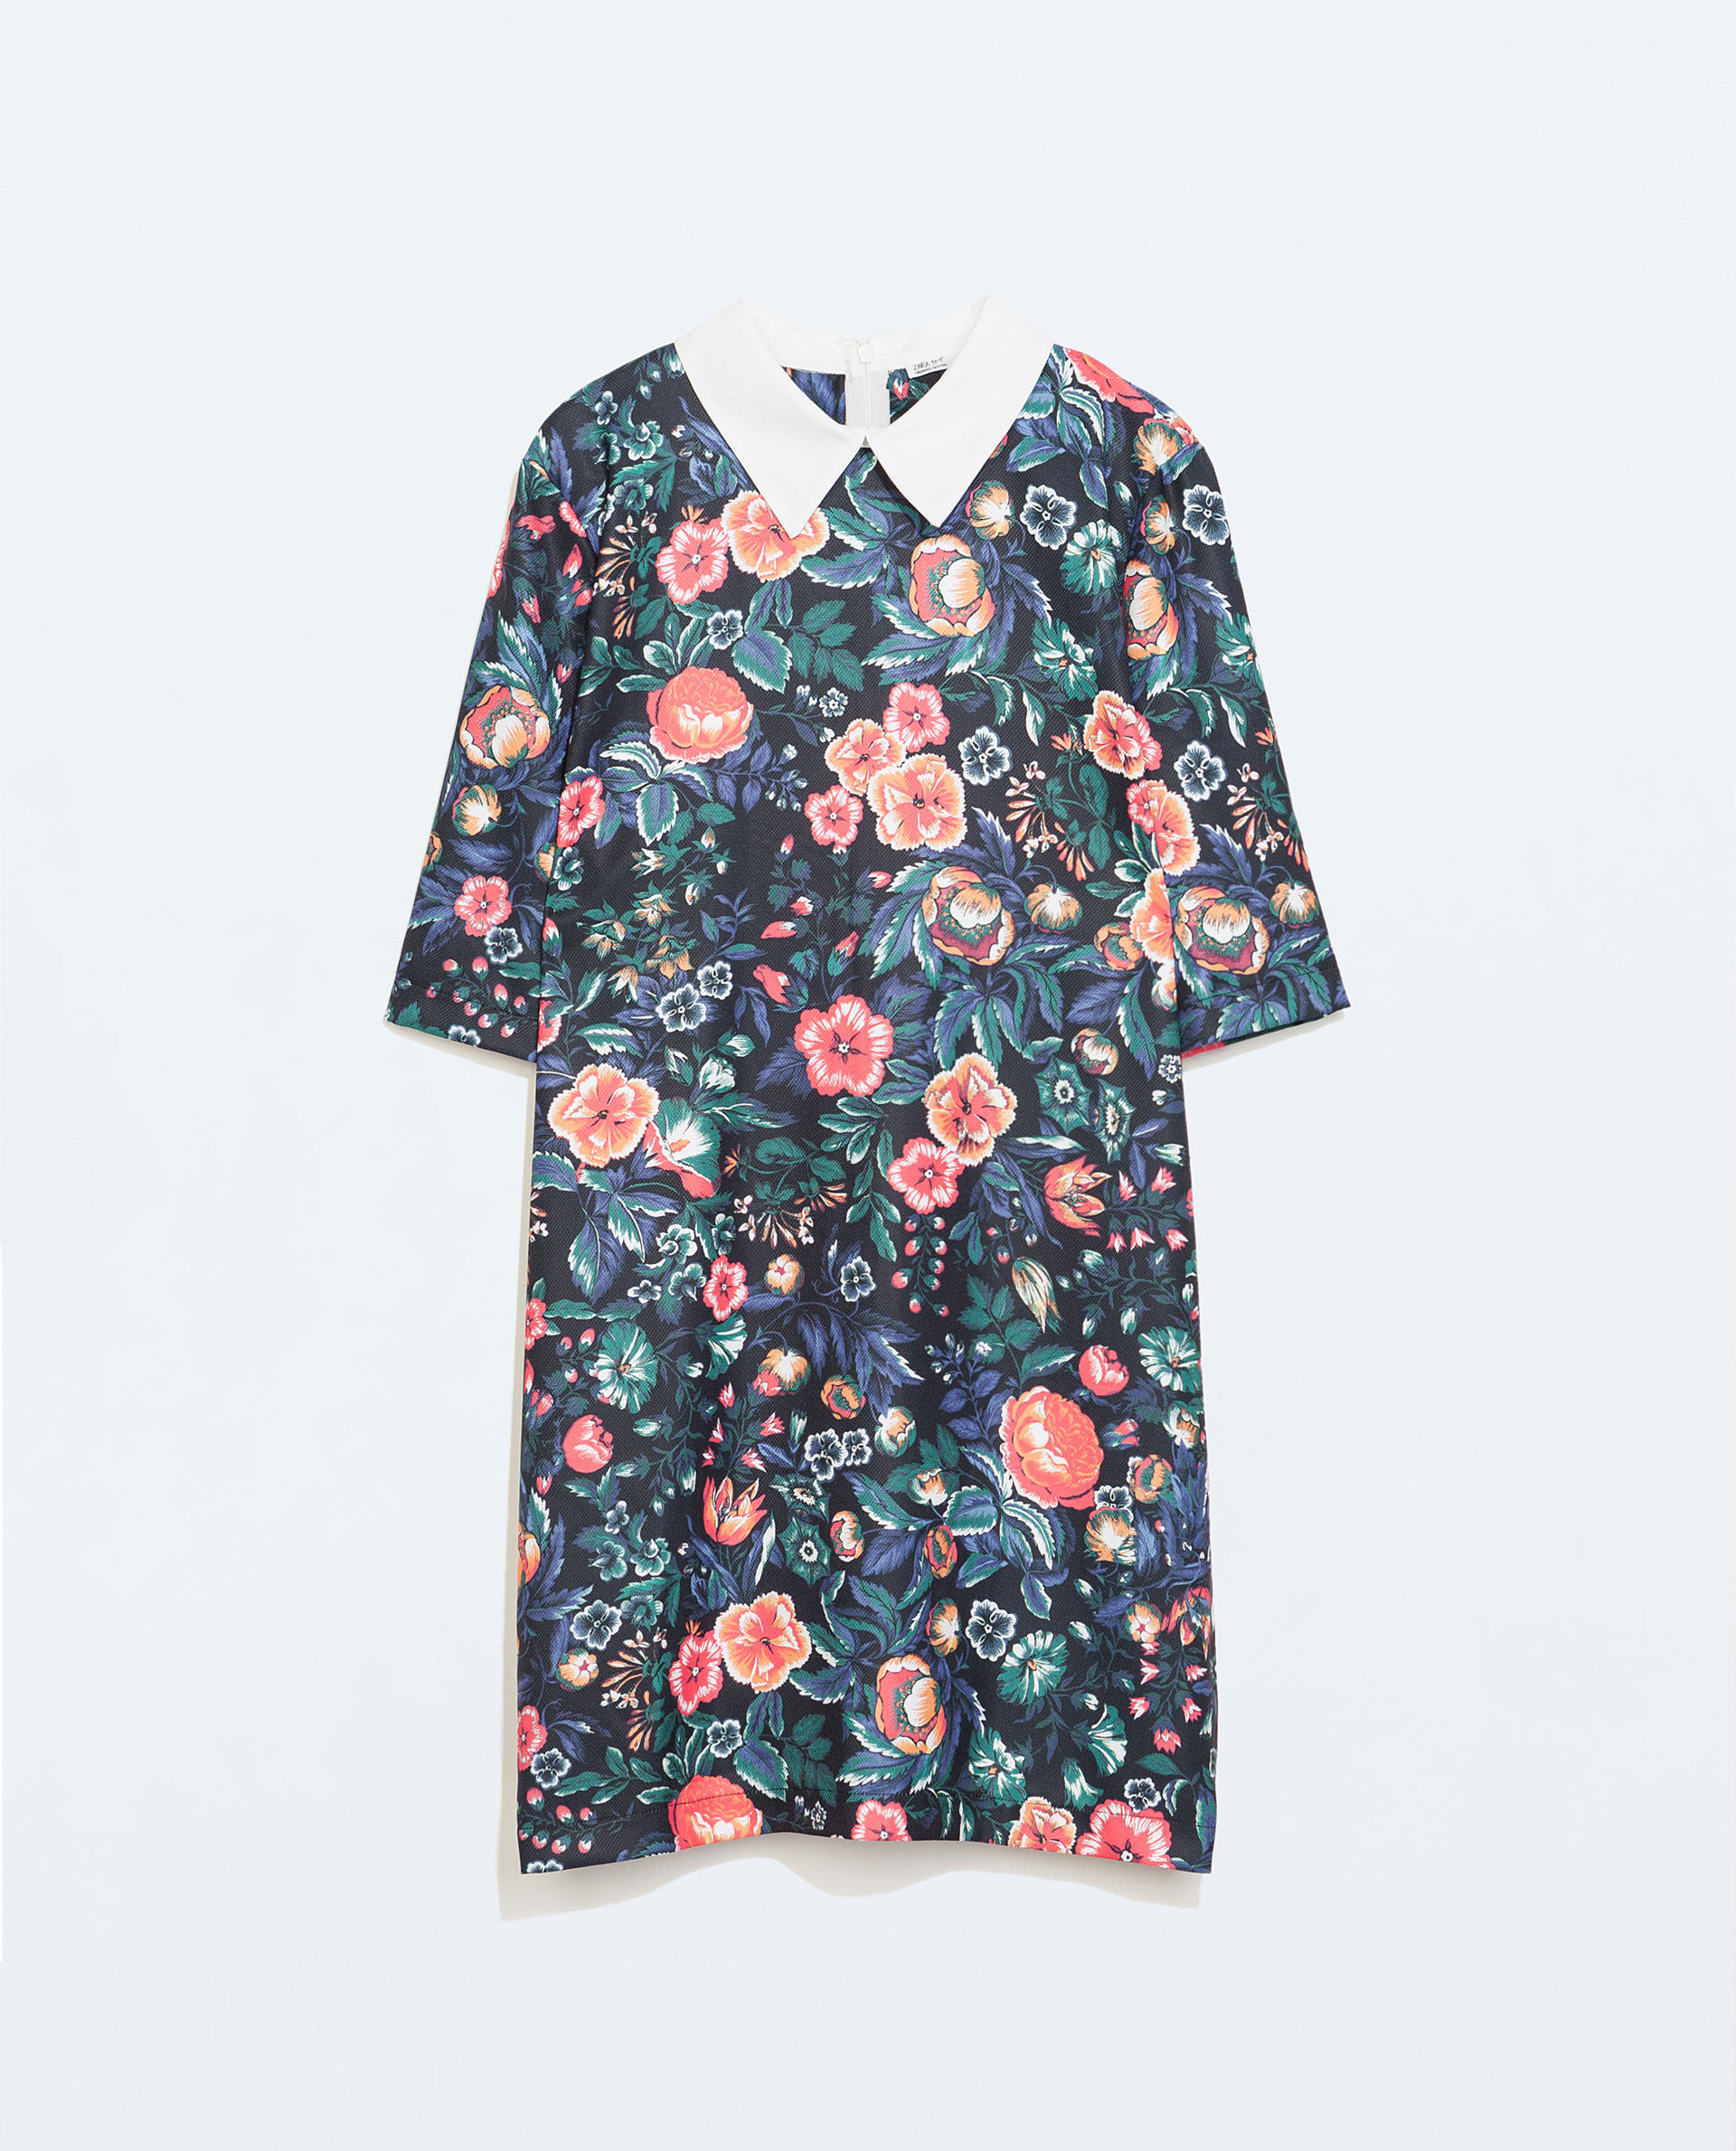 Zara floral dress with shirt collar in floral print 1 lyst for Zara mens floral shirt